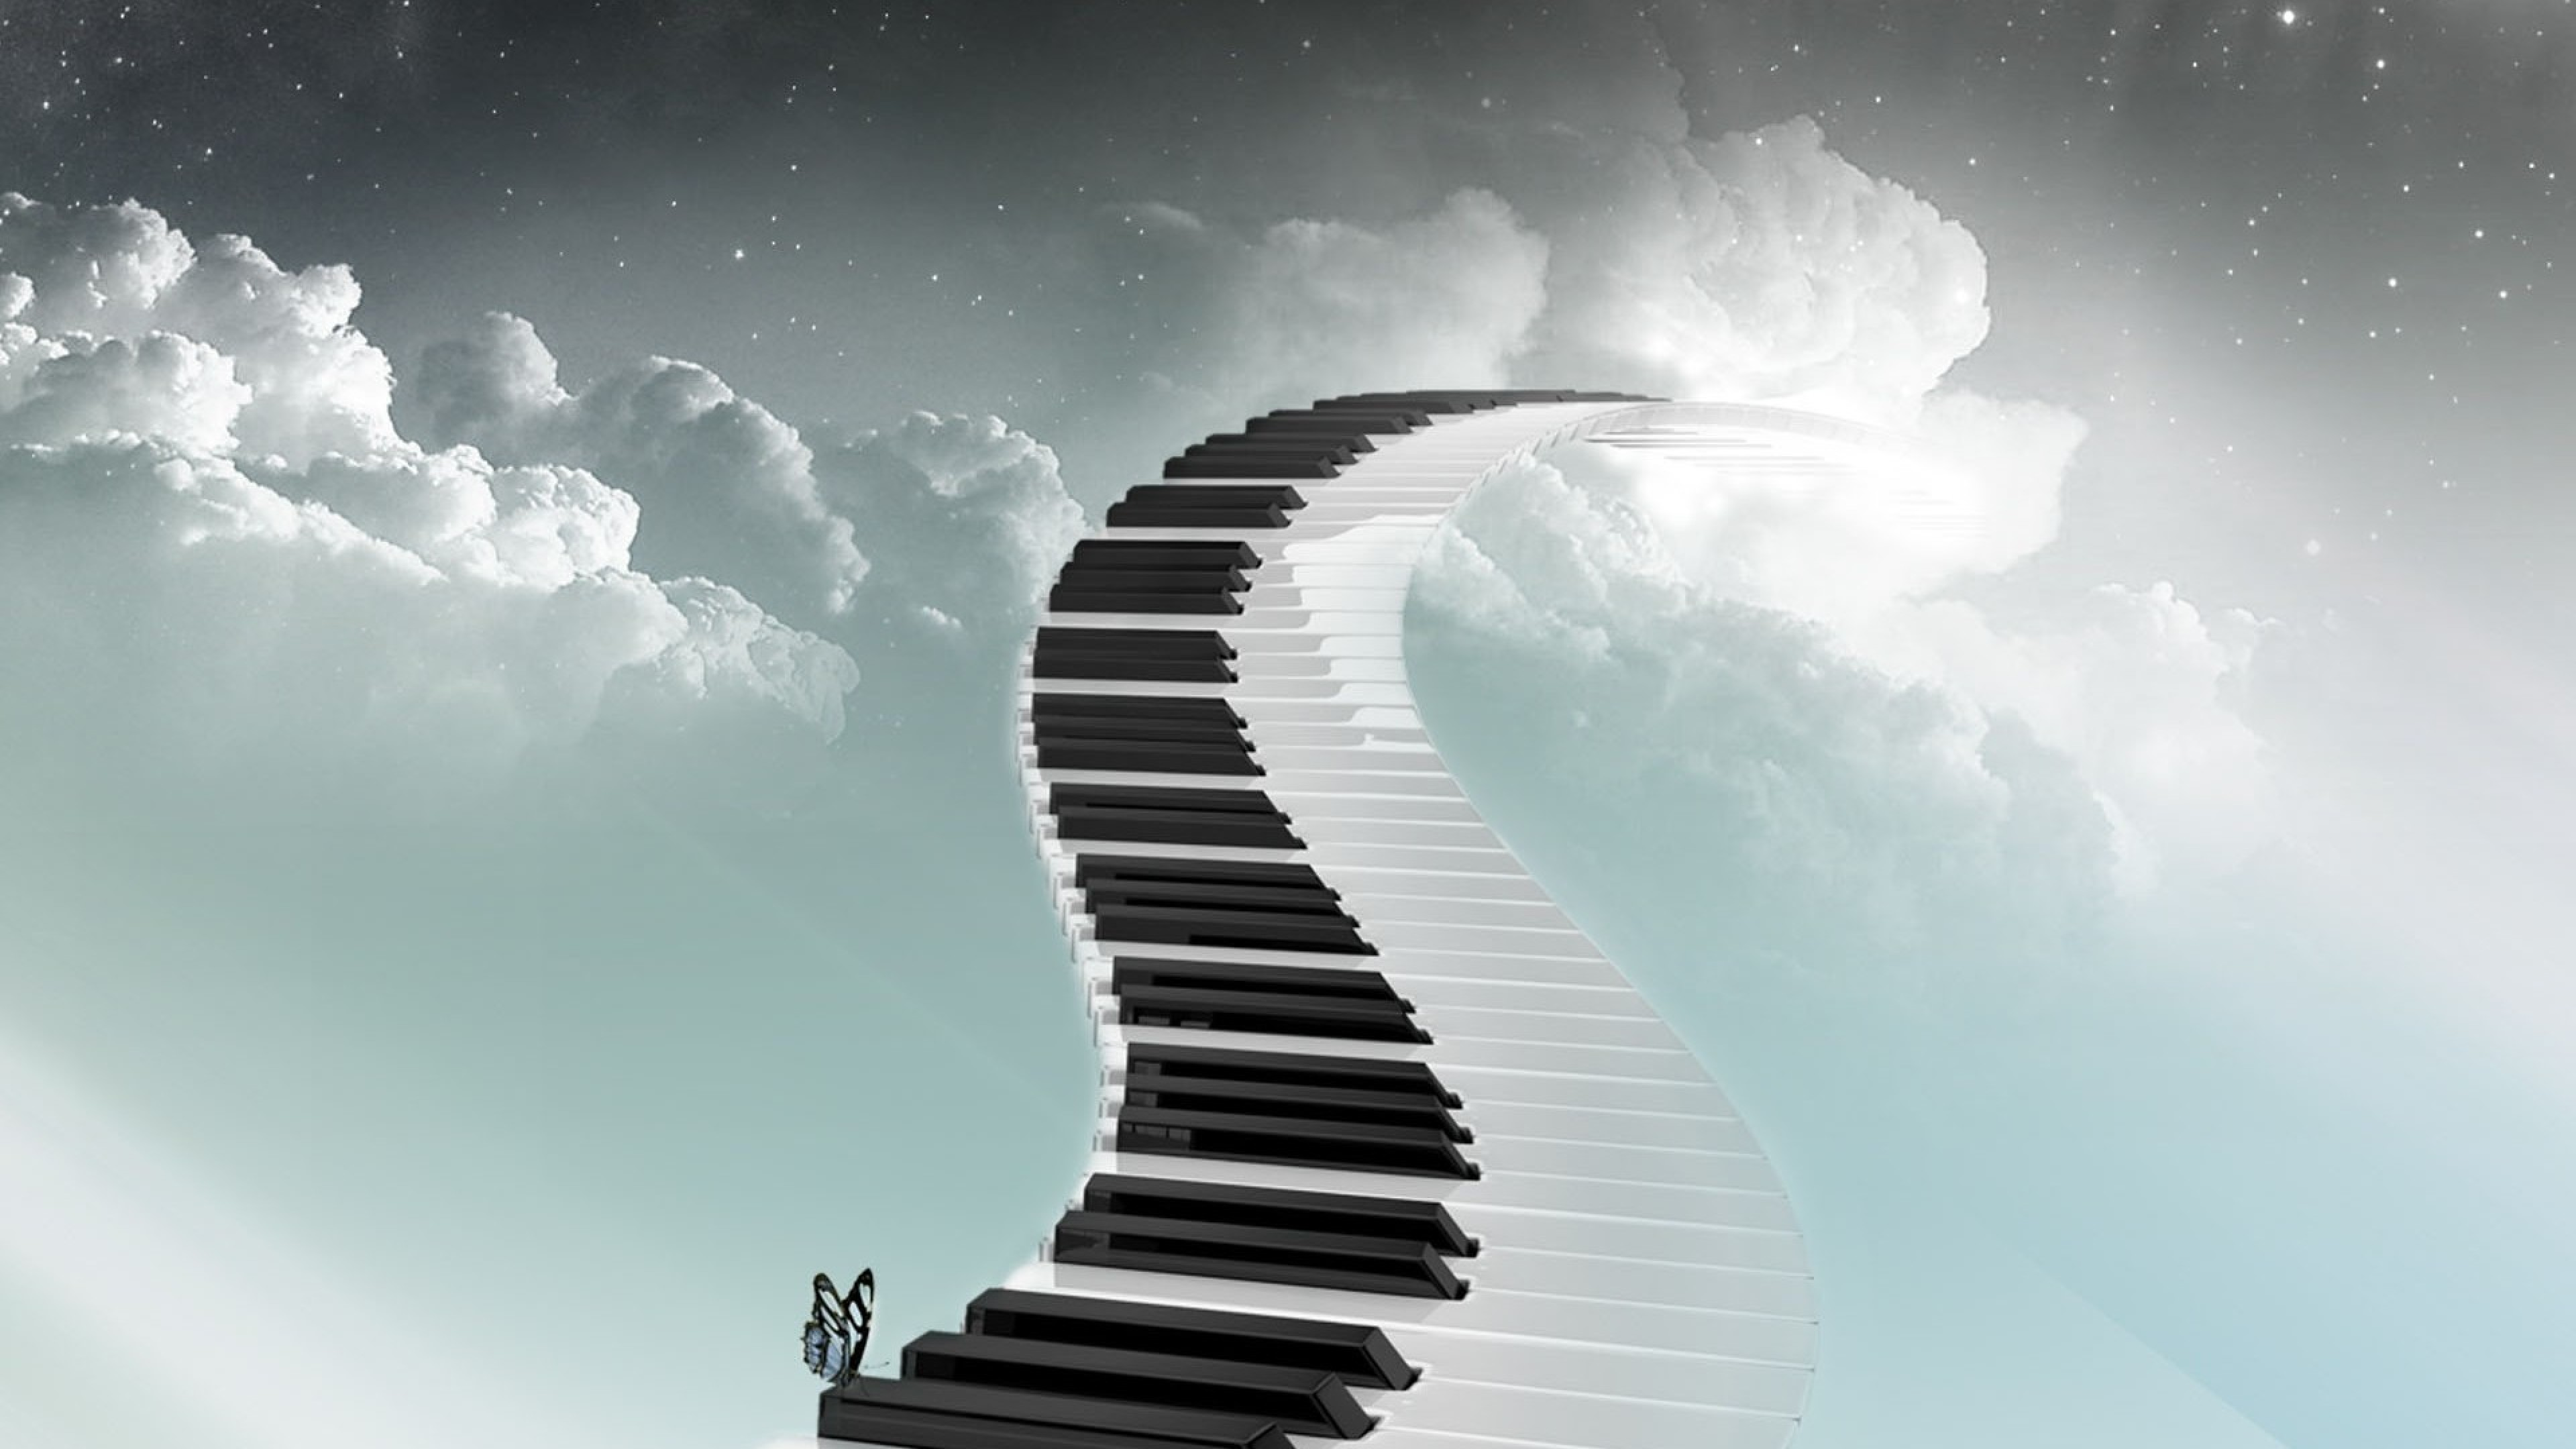 Hd Wallpaper Sky Road Piano Butterfly Staircase Music Wallpapers Trend